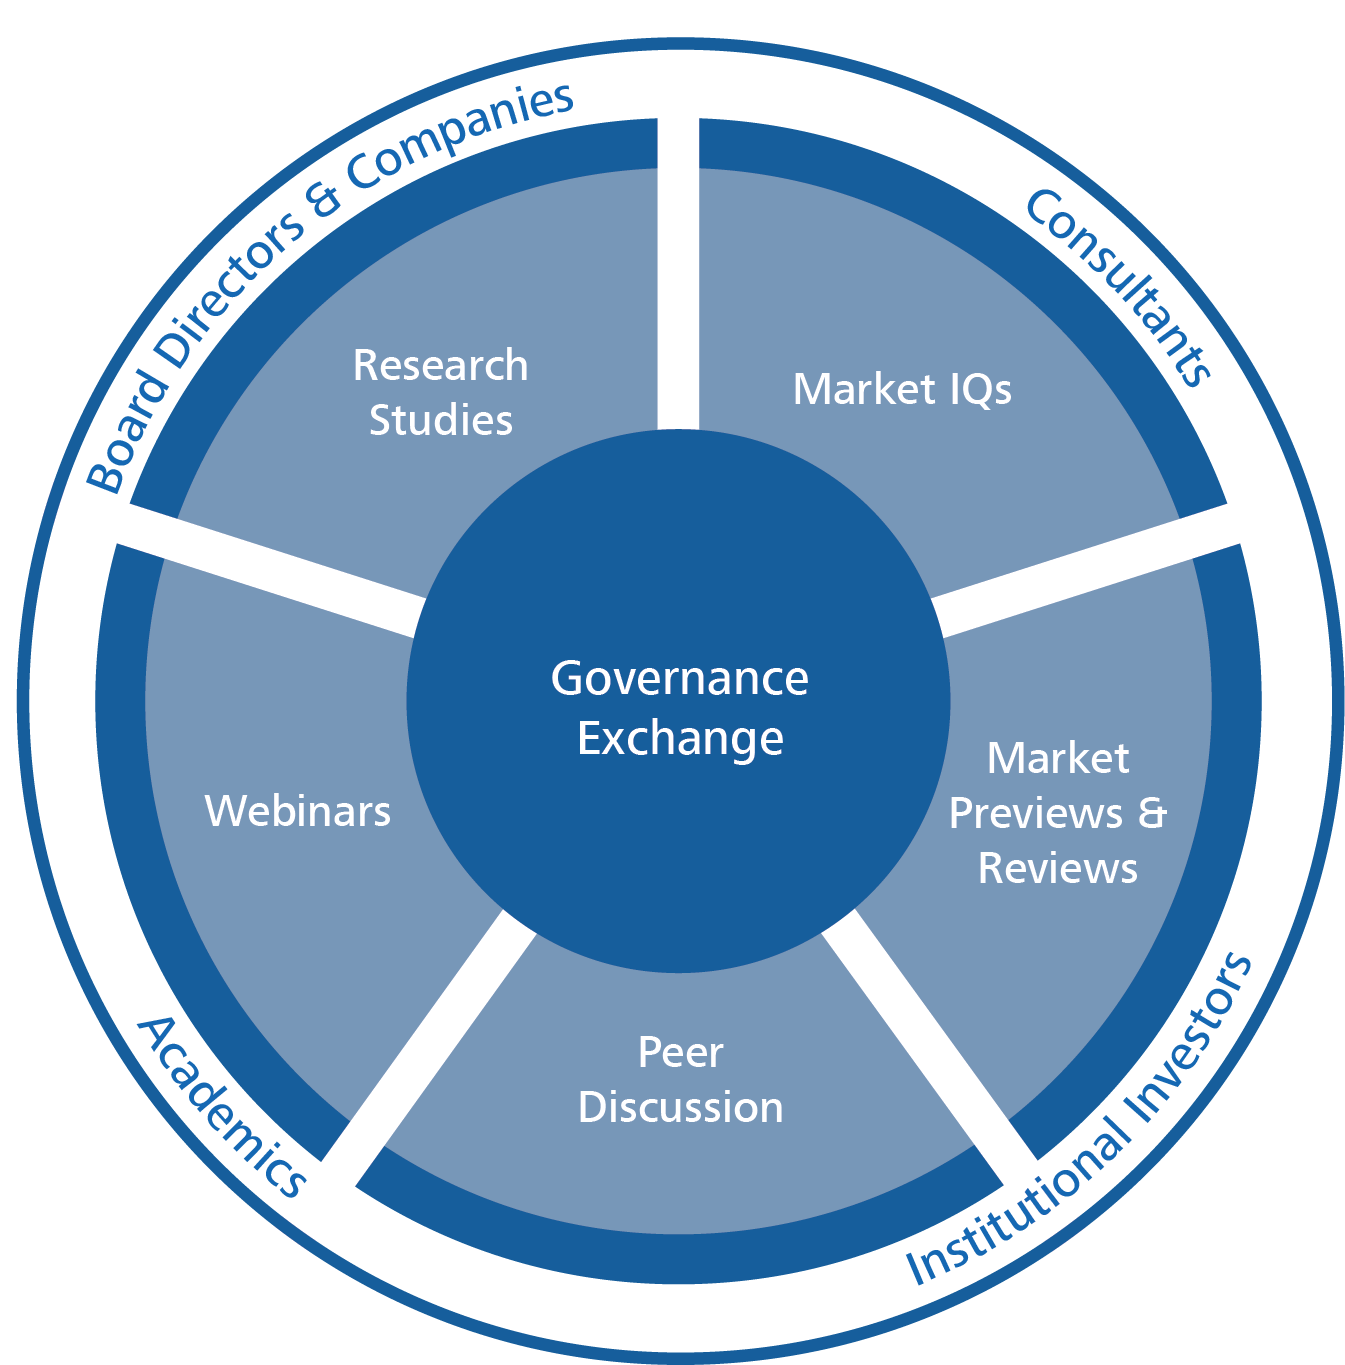 Governance Exchange